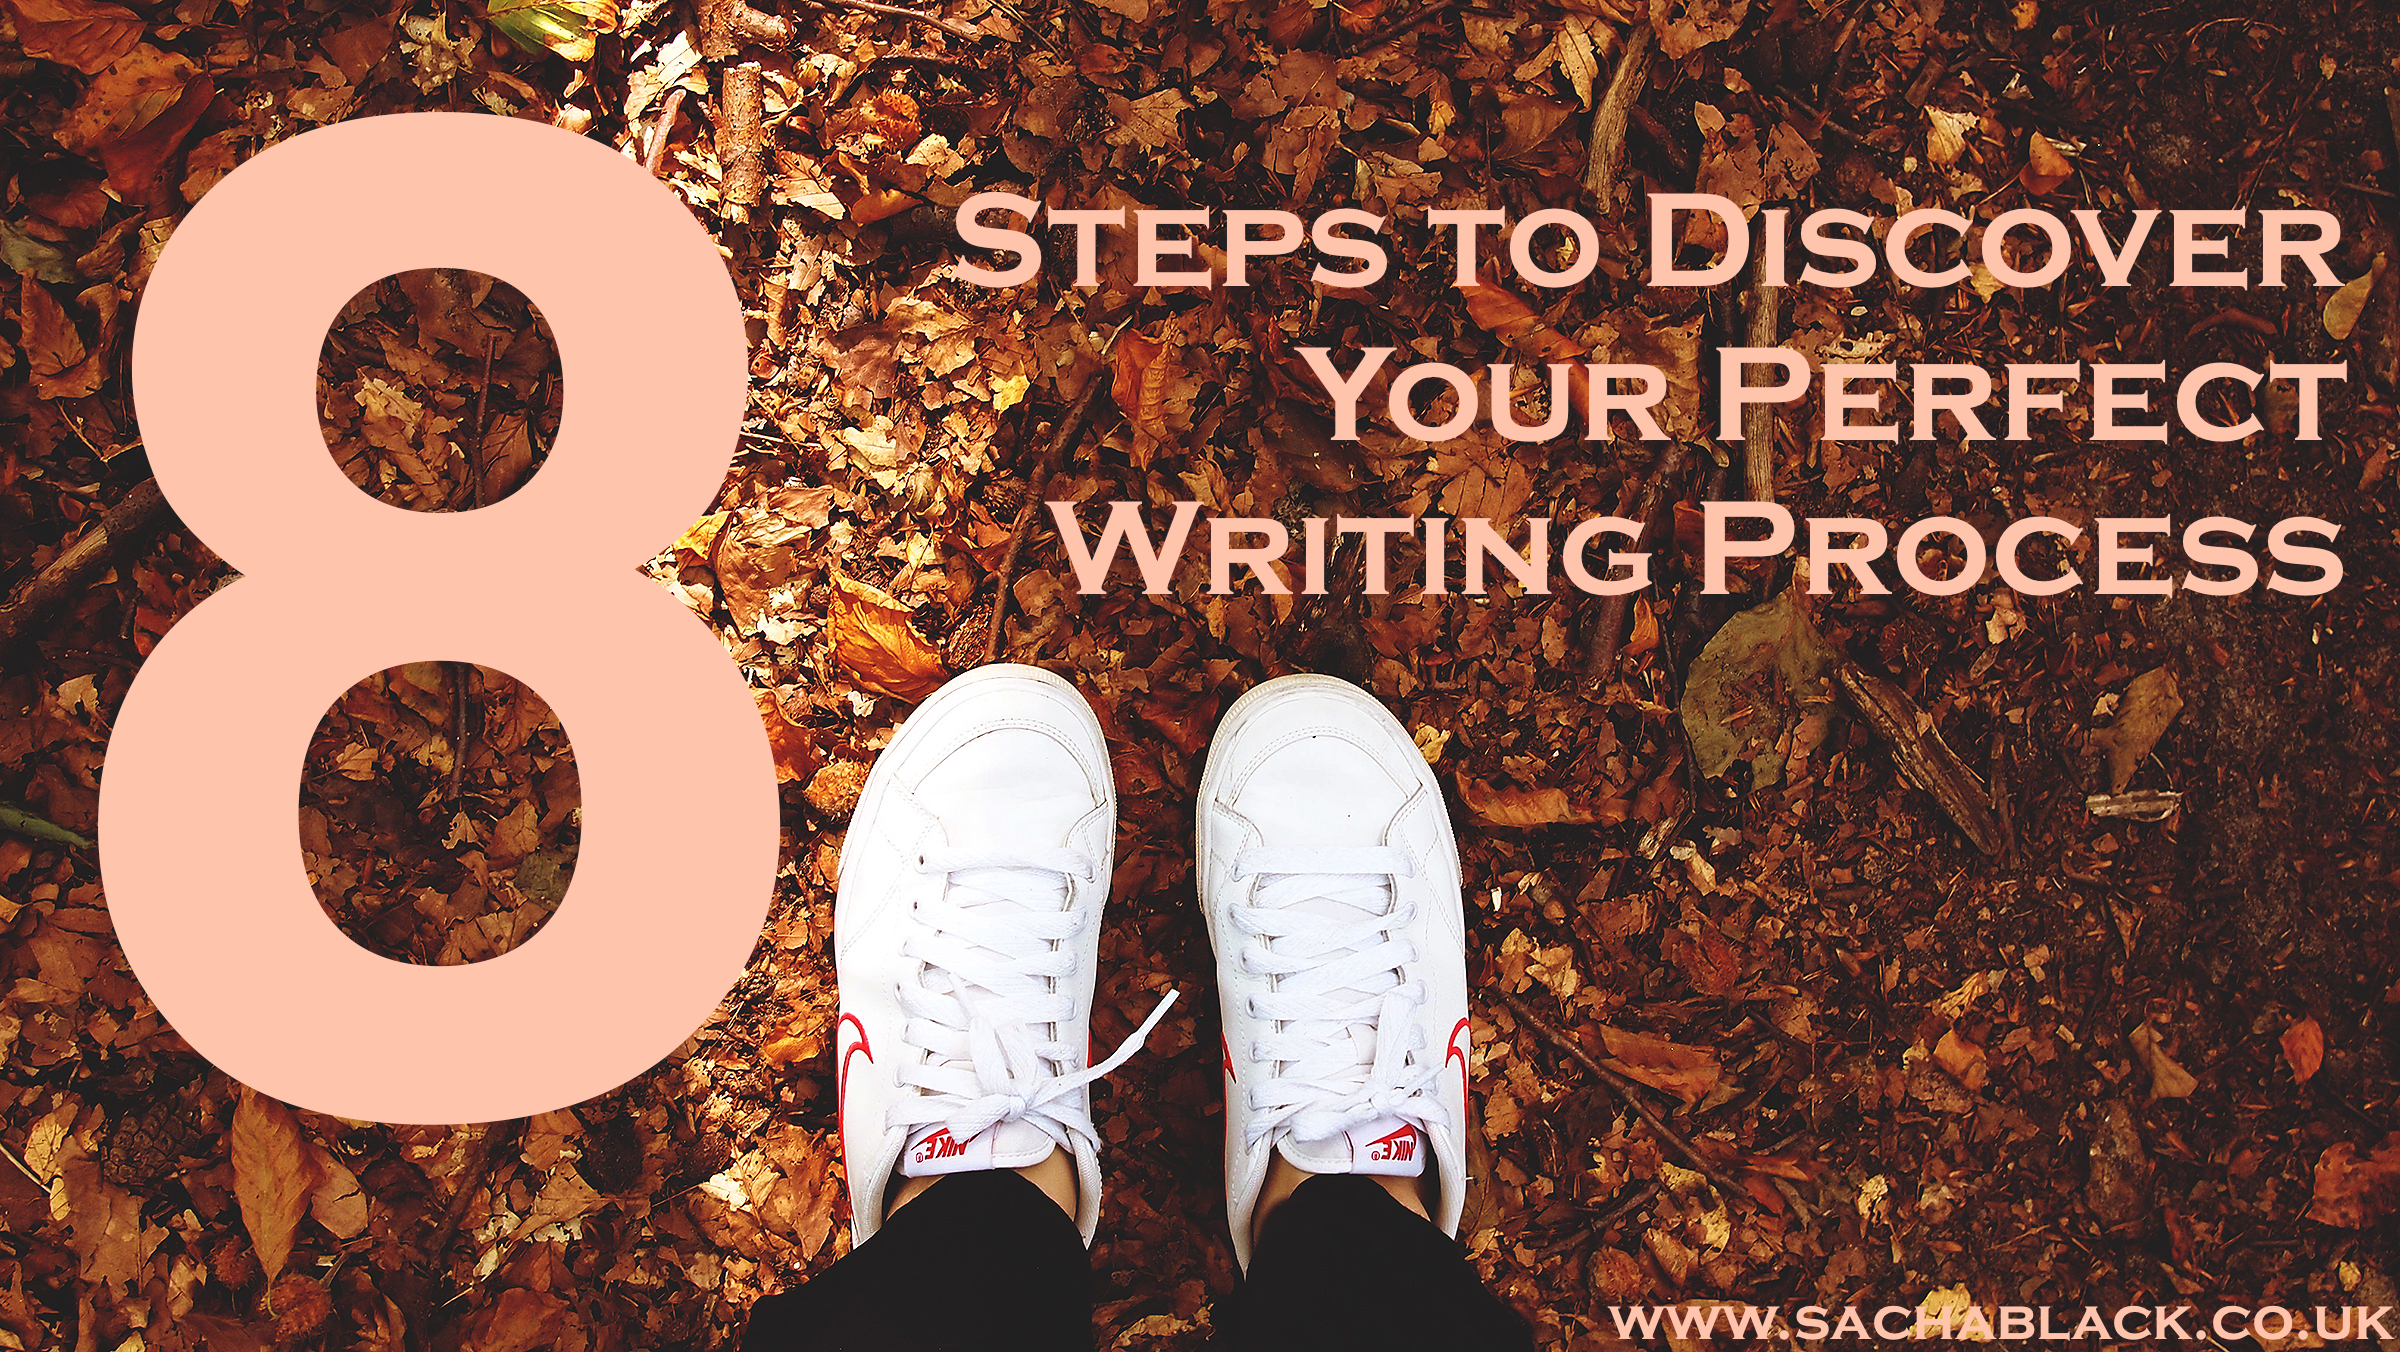 8 Steps to Discover Your Perfect Writing Process